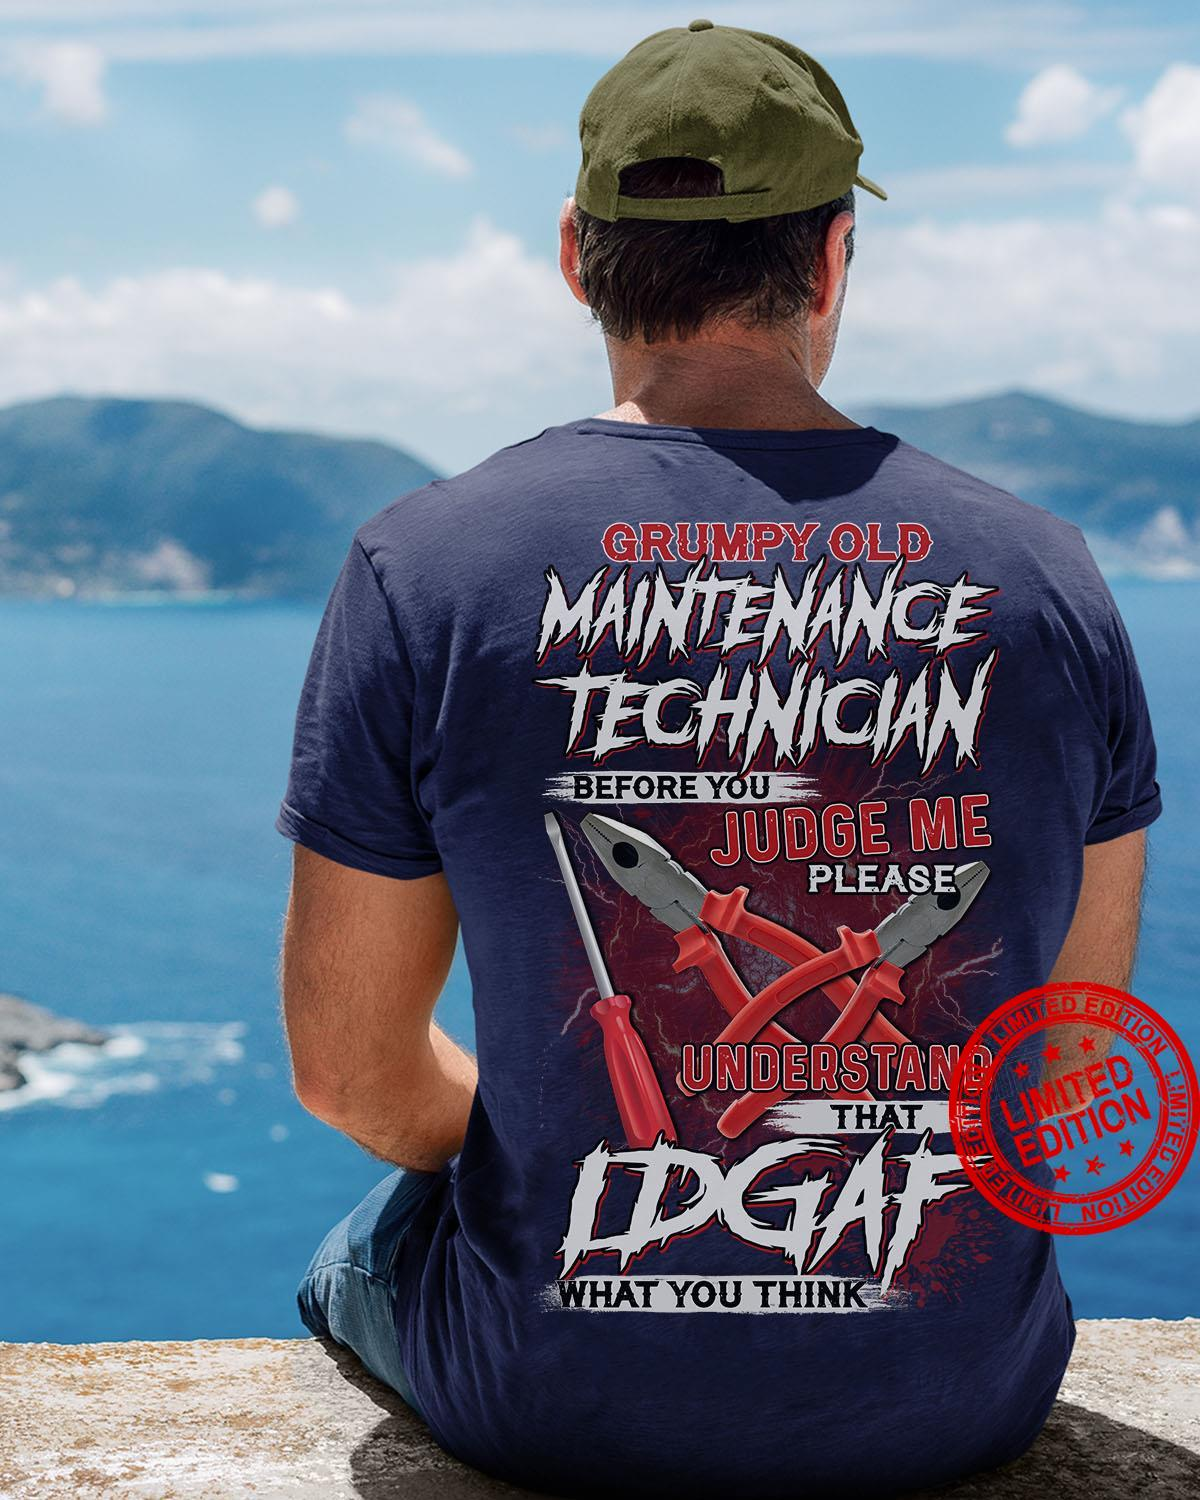 Grumpy Maintenance Technician Before You Judge Me Please Understand That Idgaf What You Think Shirt